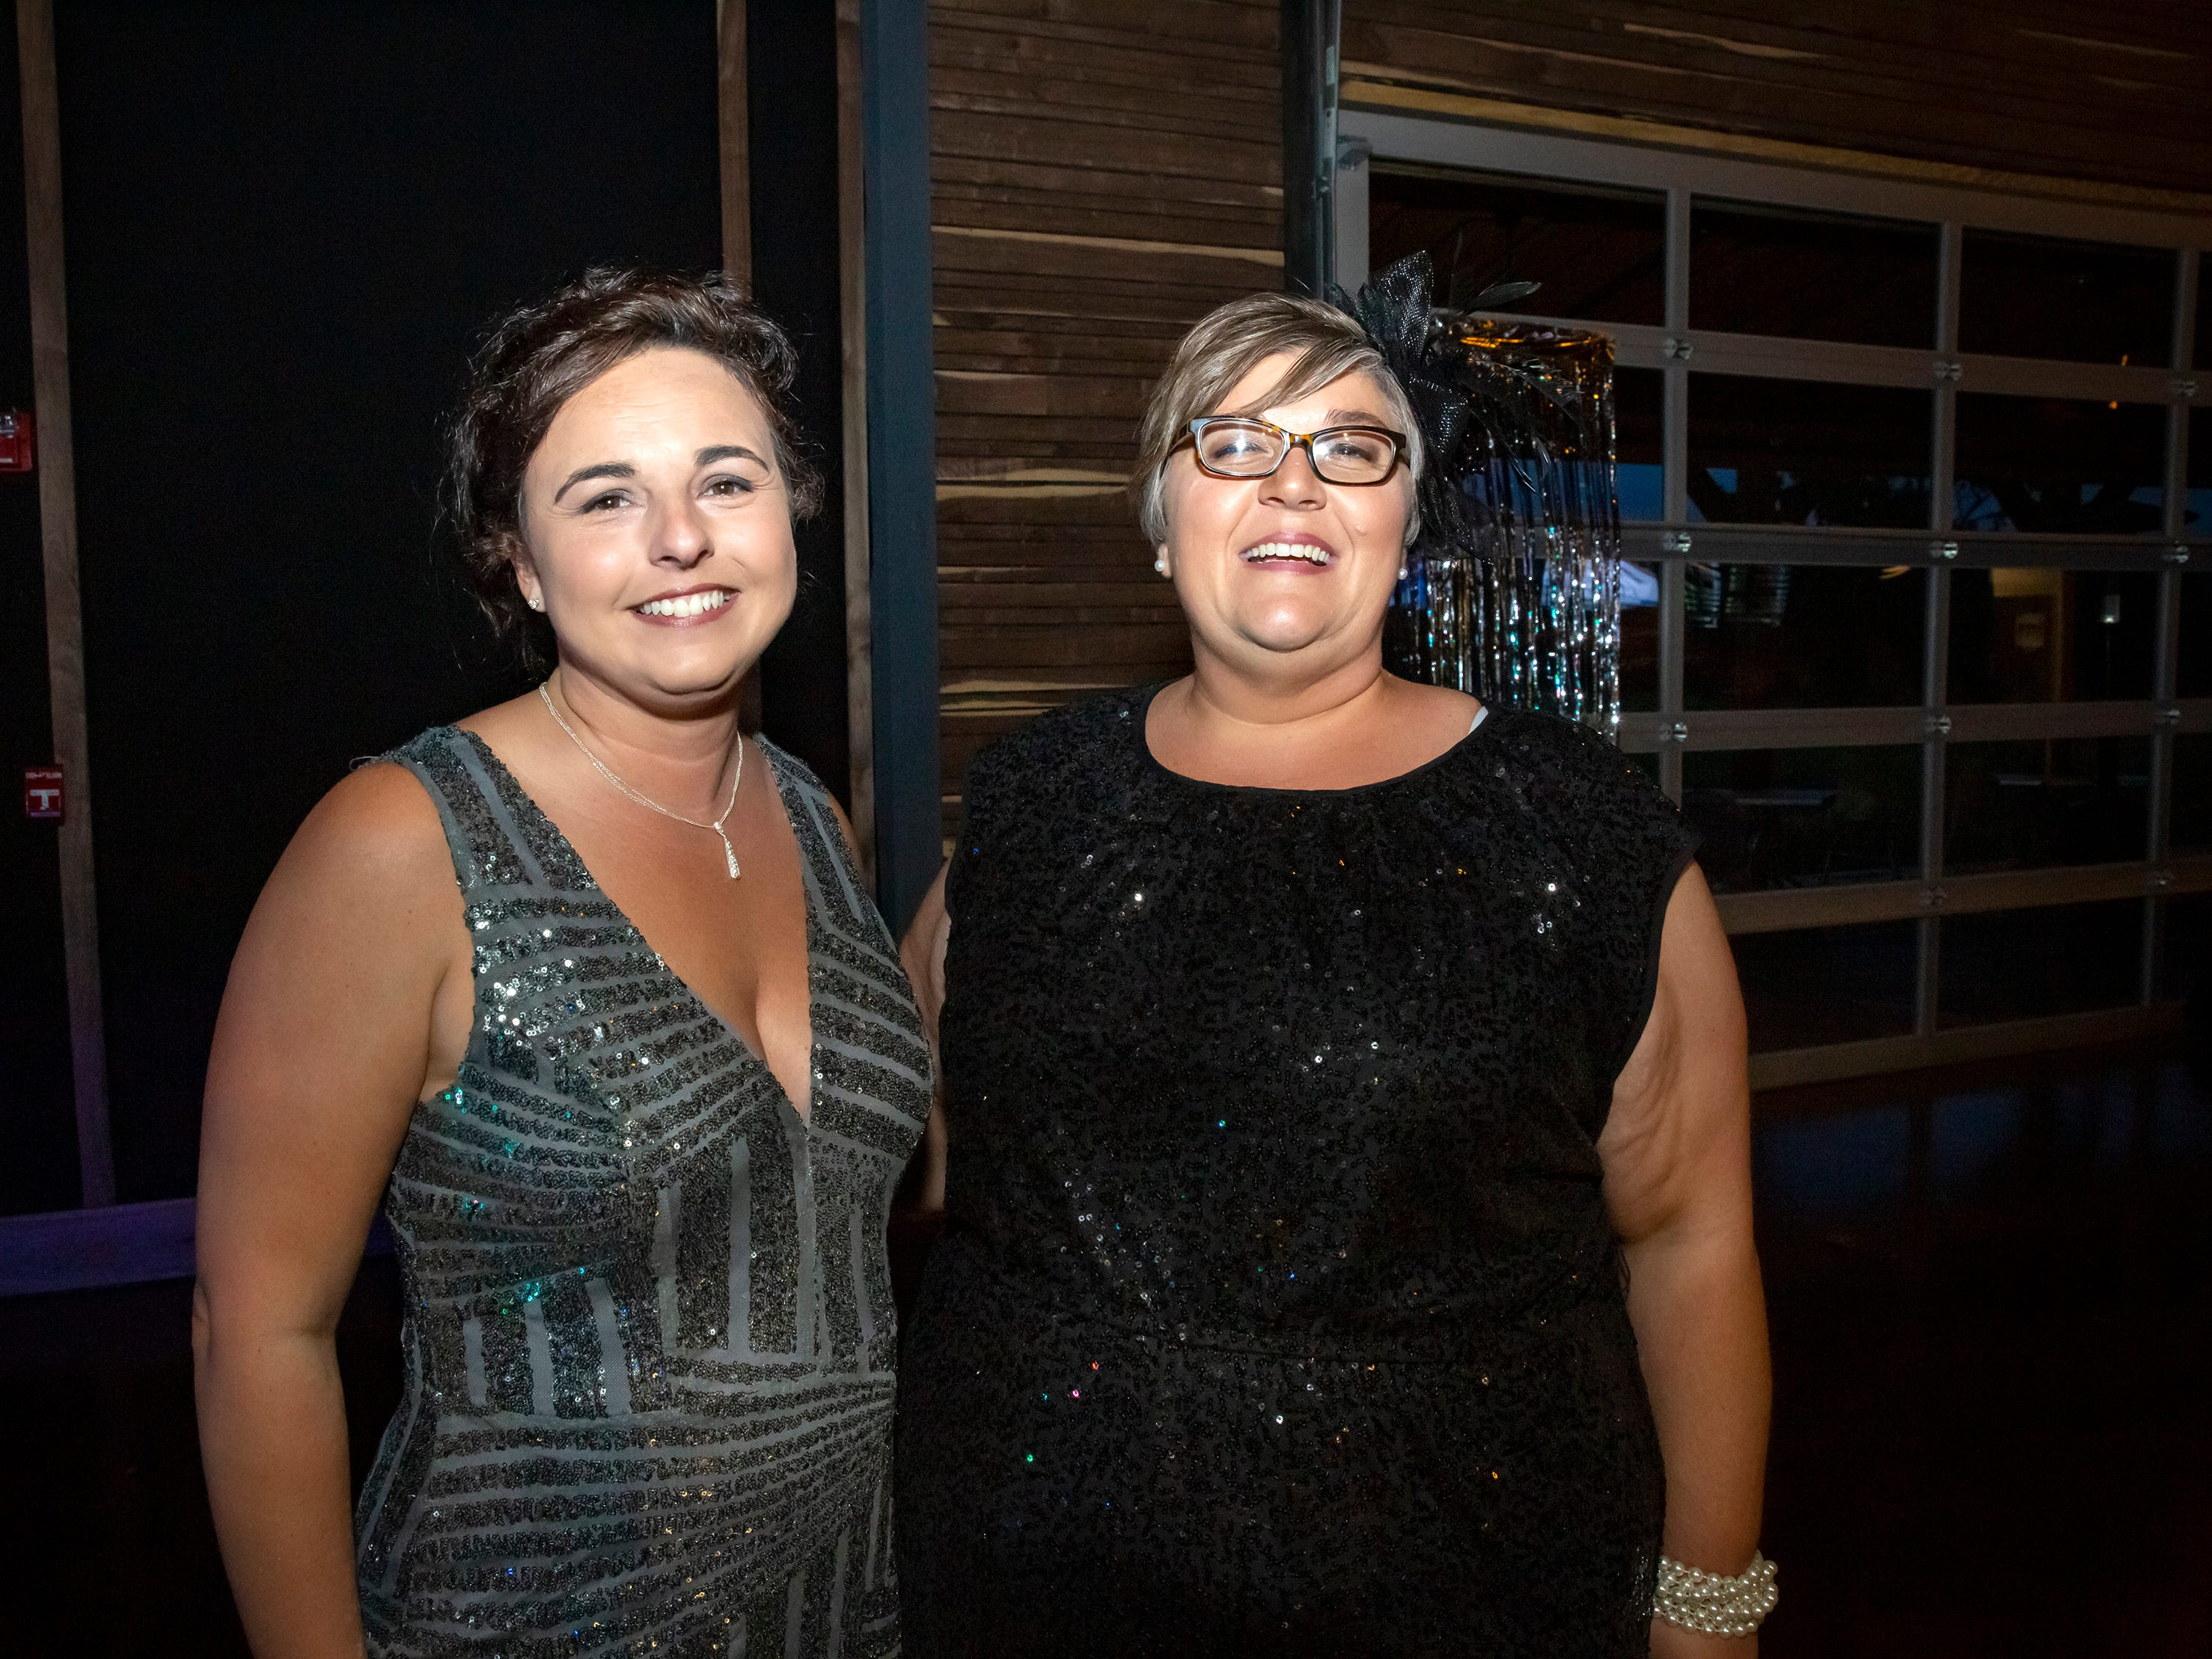 Brenda Haynes and Melissa McGuire at the Adult Prom held at Hop Springs to benefit Kymari House, Saturday, May 11, 2019.